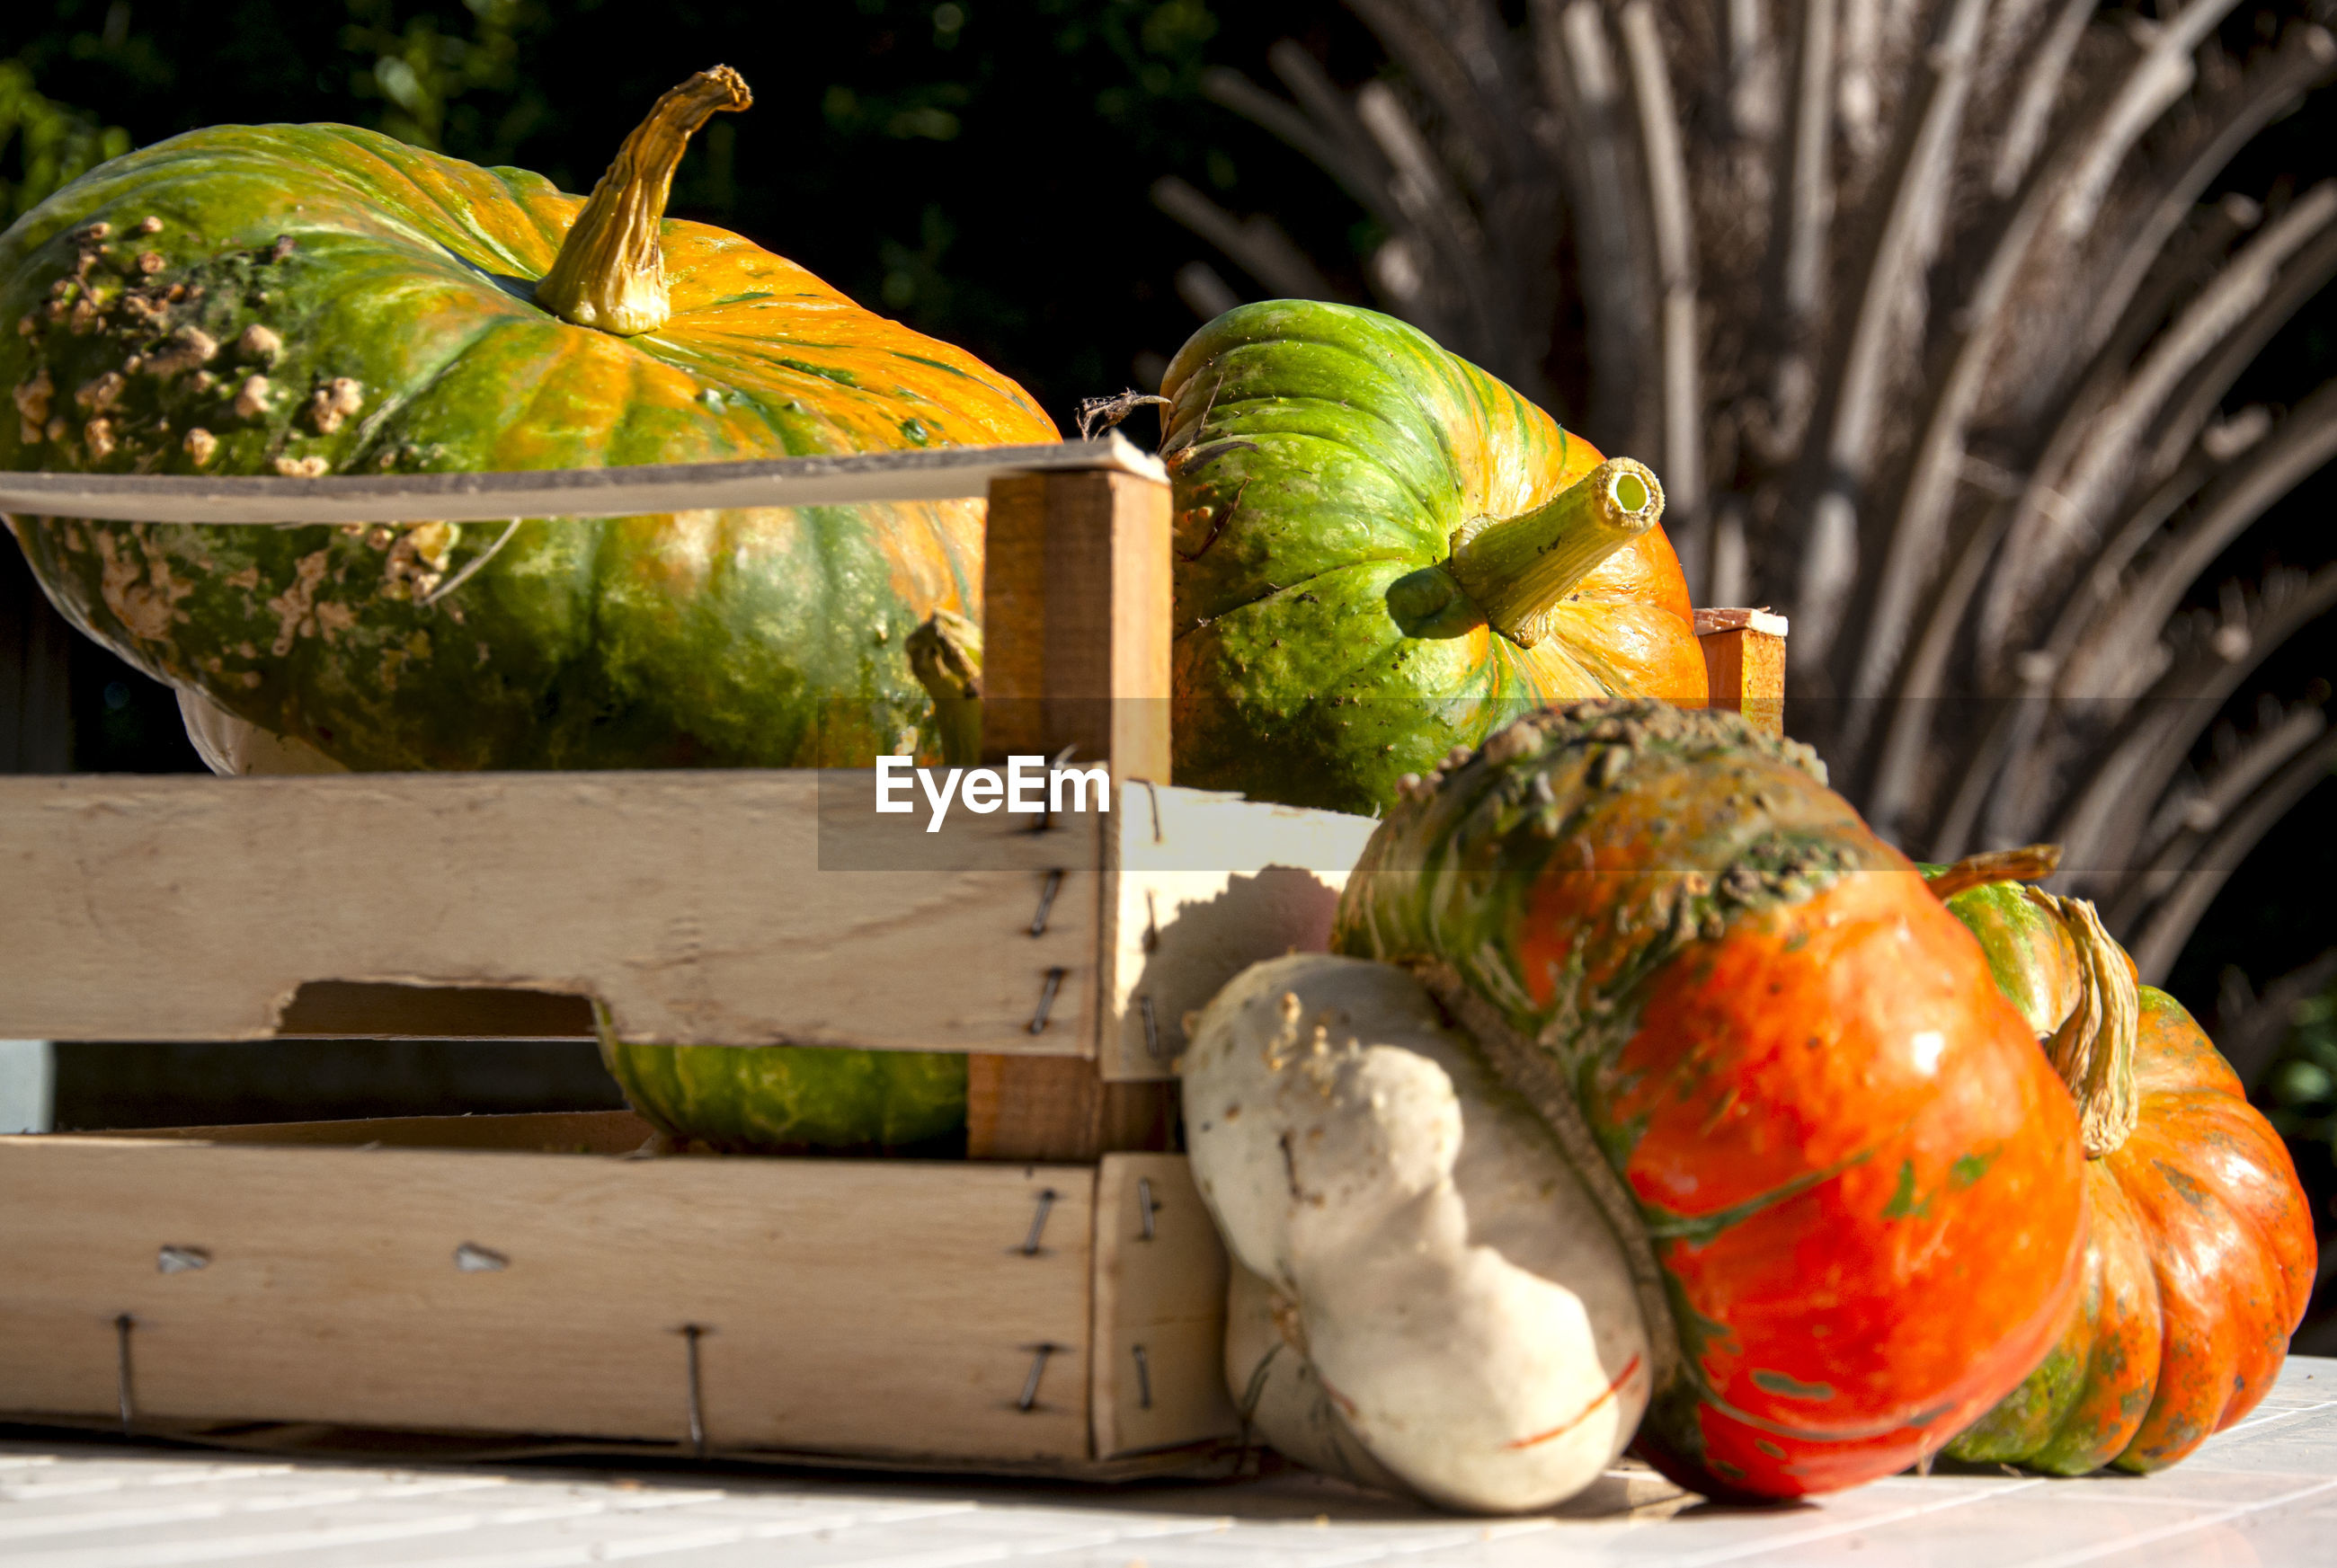 CLOSE-UP OF PUMPKIN ON WOODEN TABLE